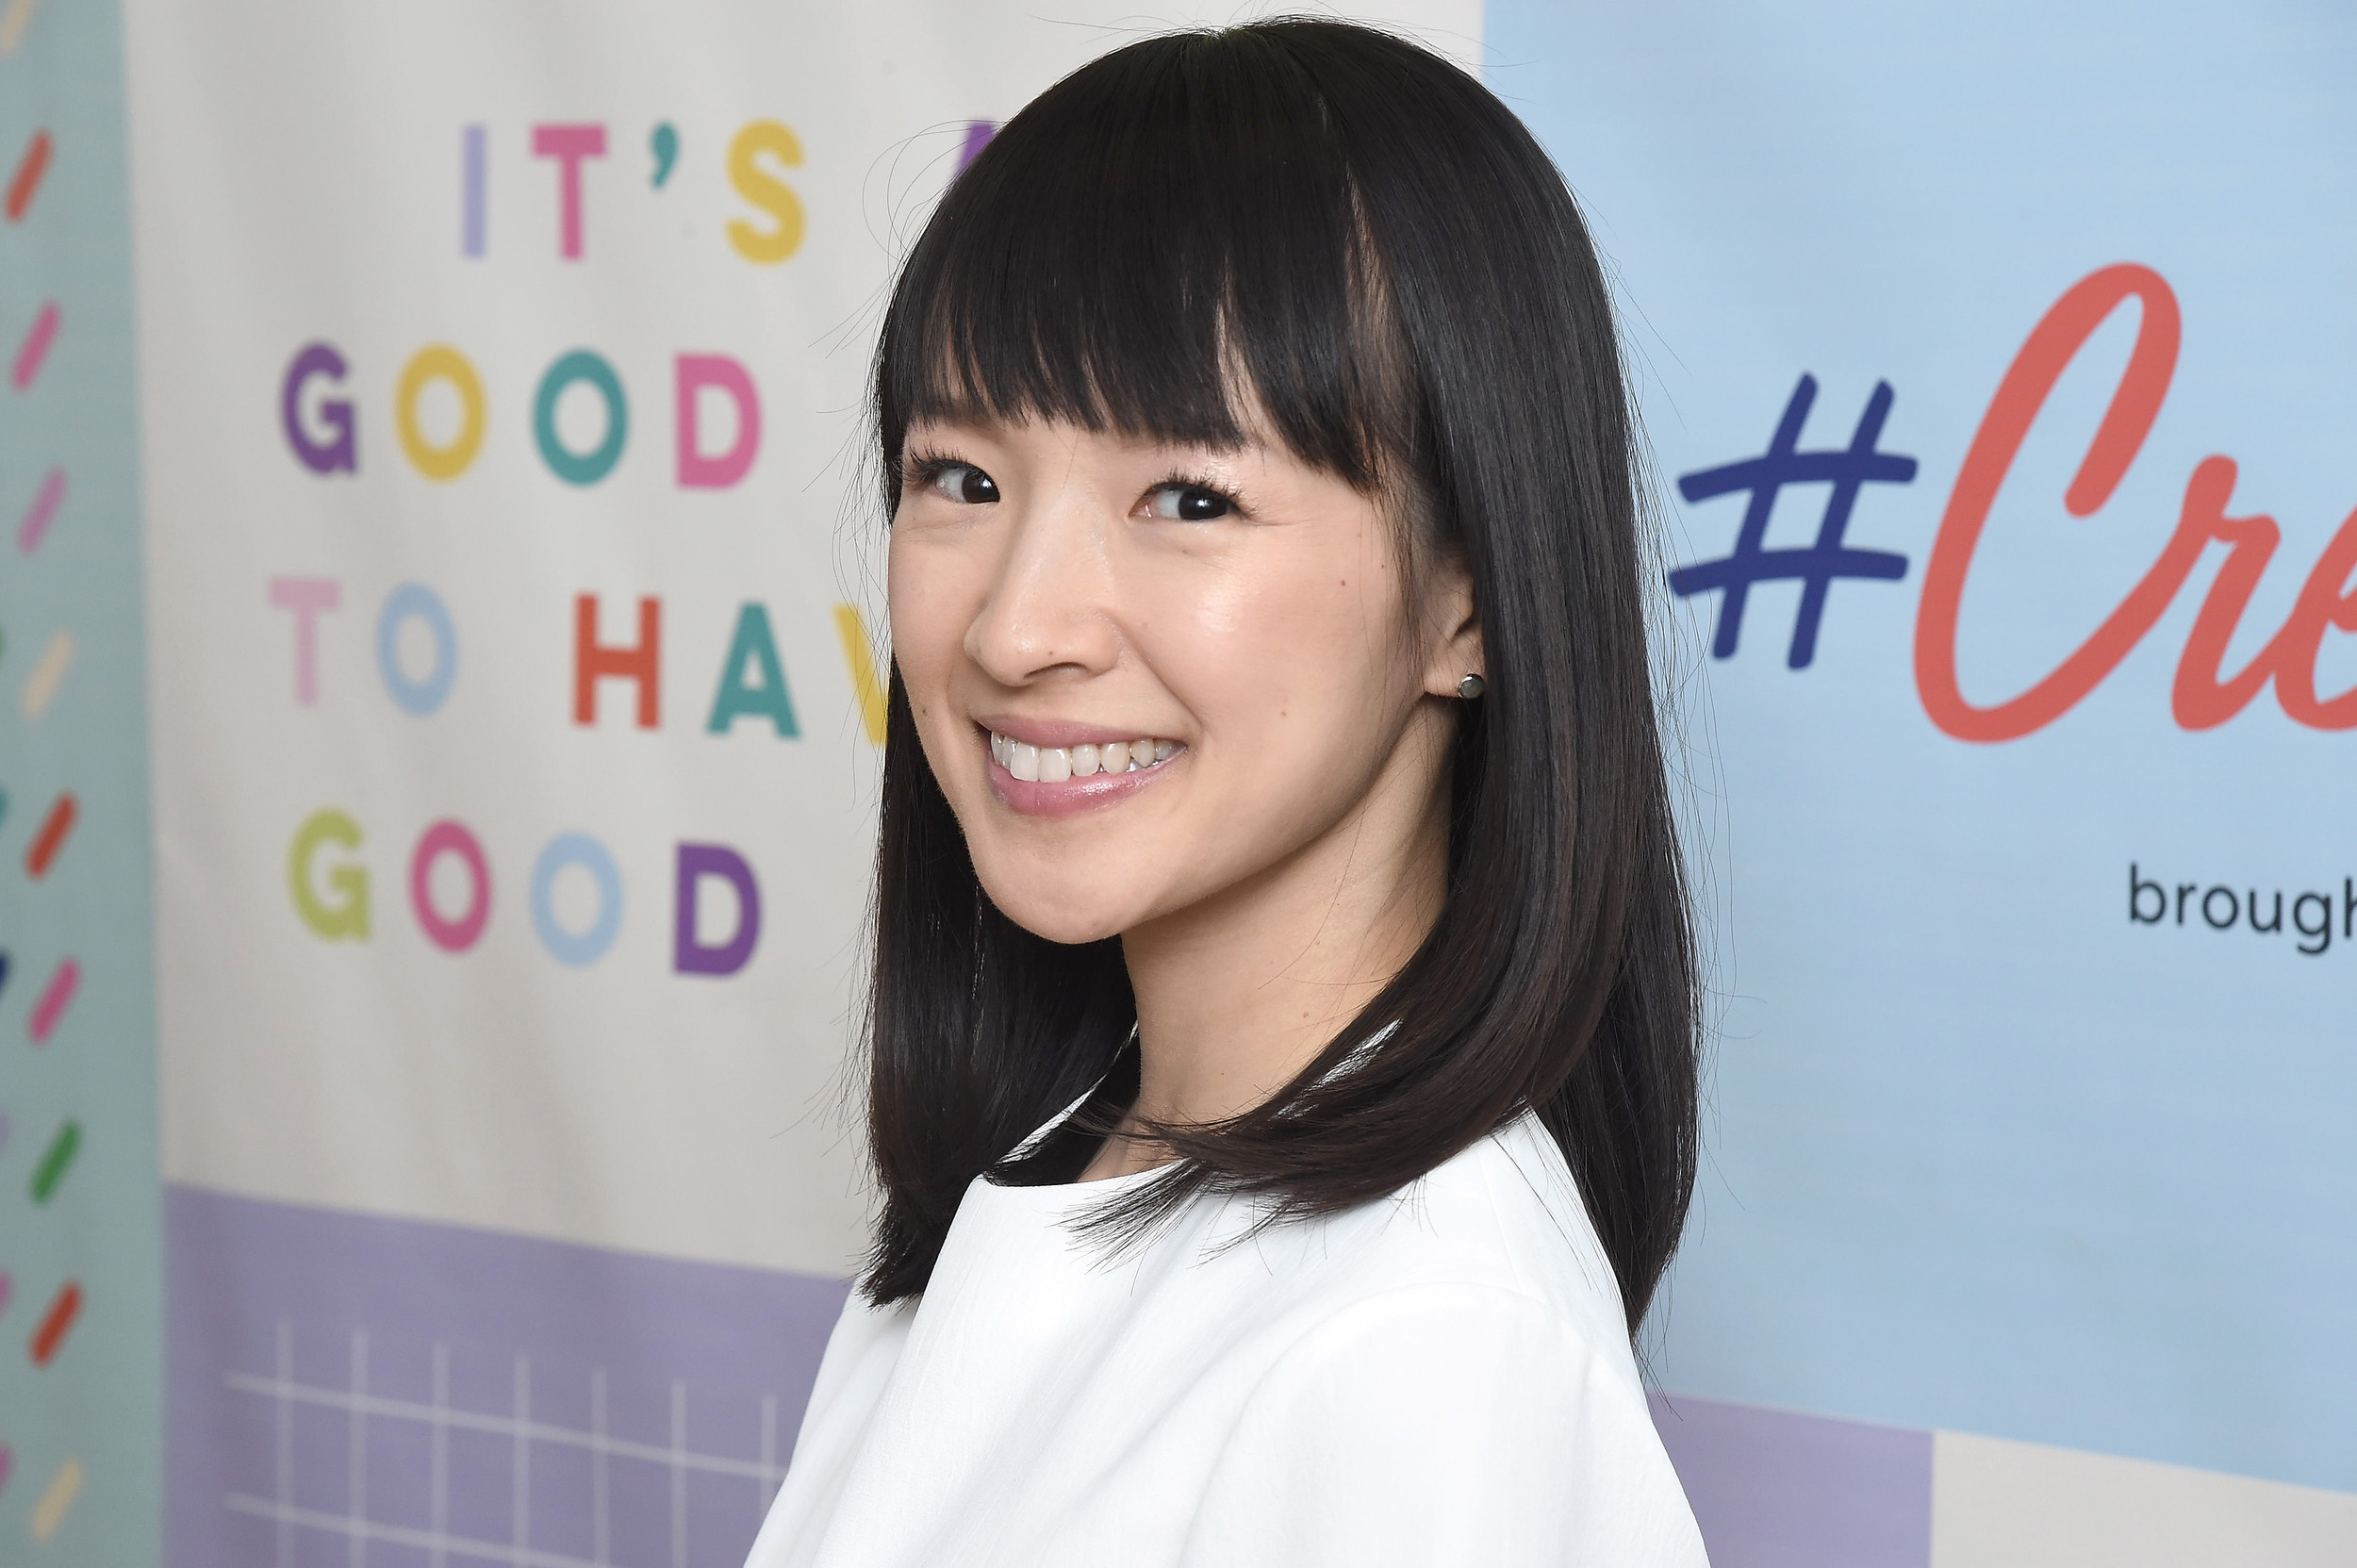 Marie Kondo's Beauty Routine Is (Unsurprisingly) Streamlined